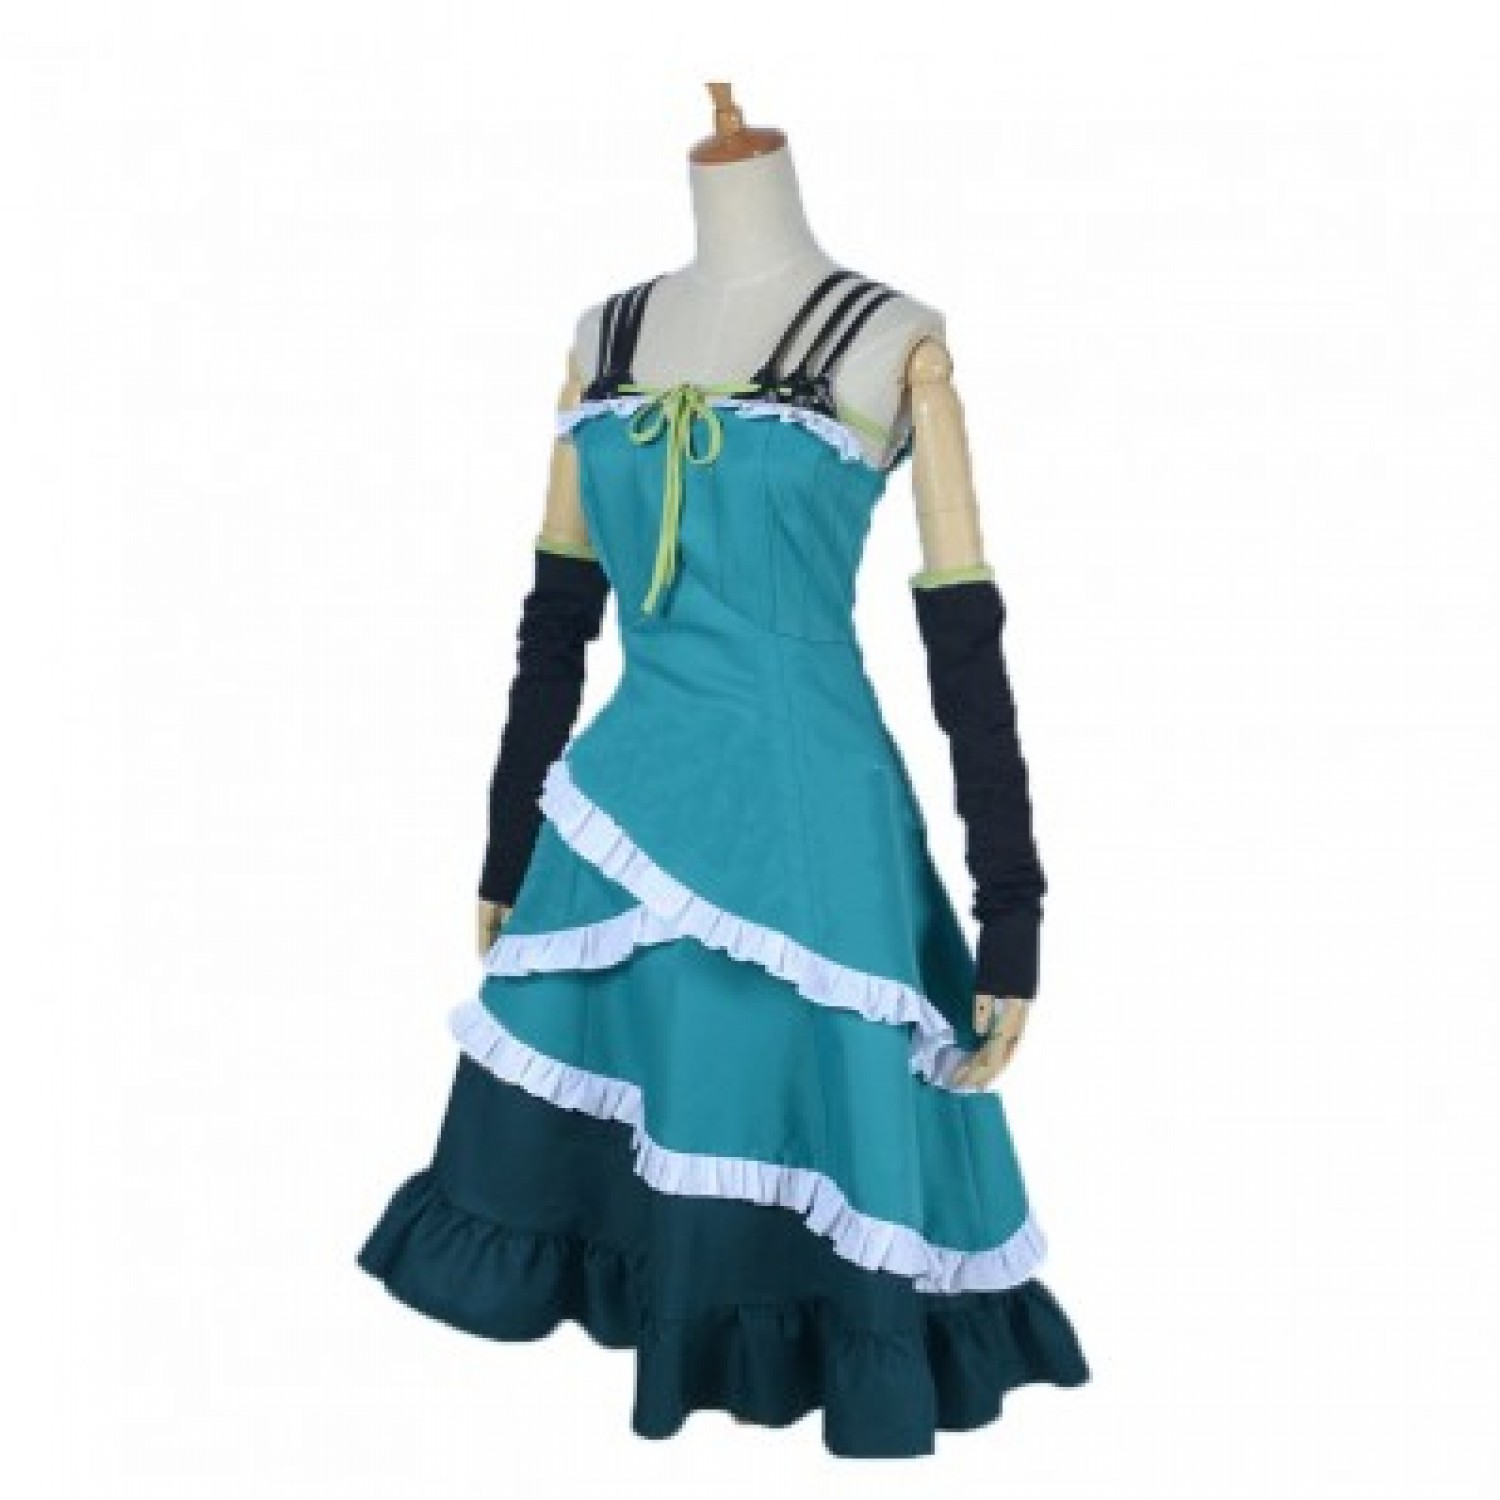 Black Bullet Tina Sprout Fashion Lolita Dress Cosplay Costume